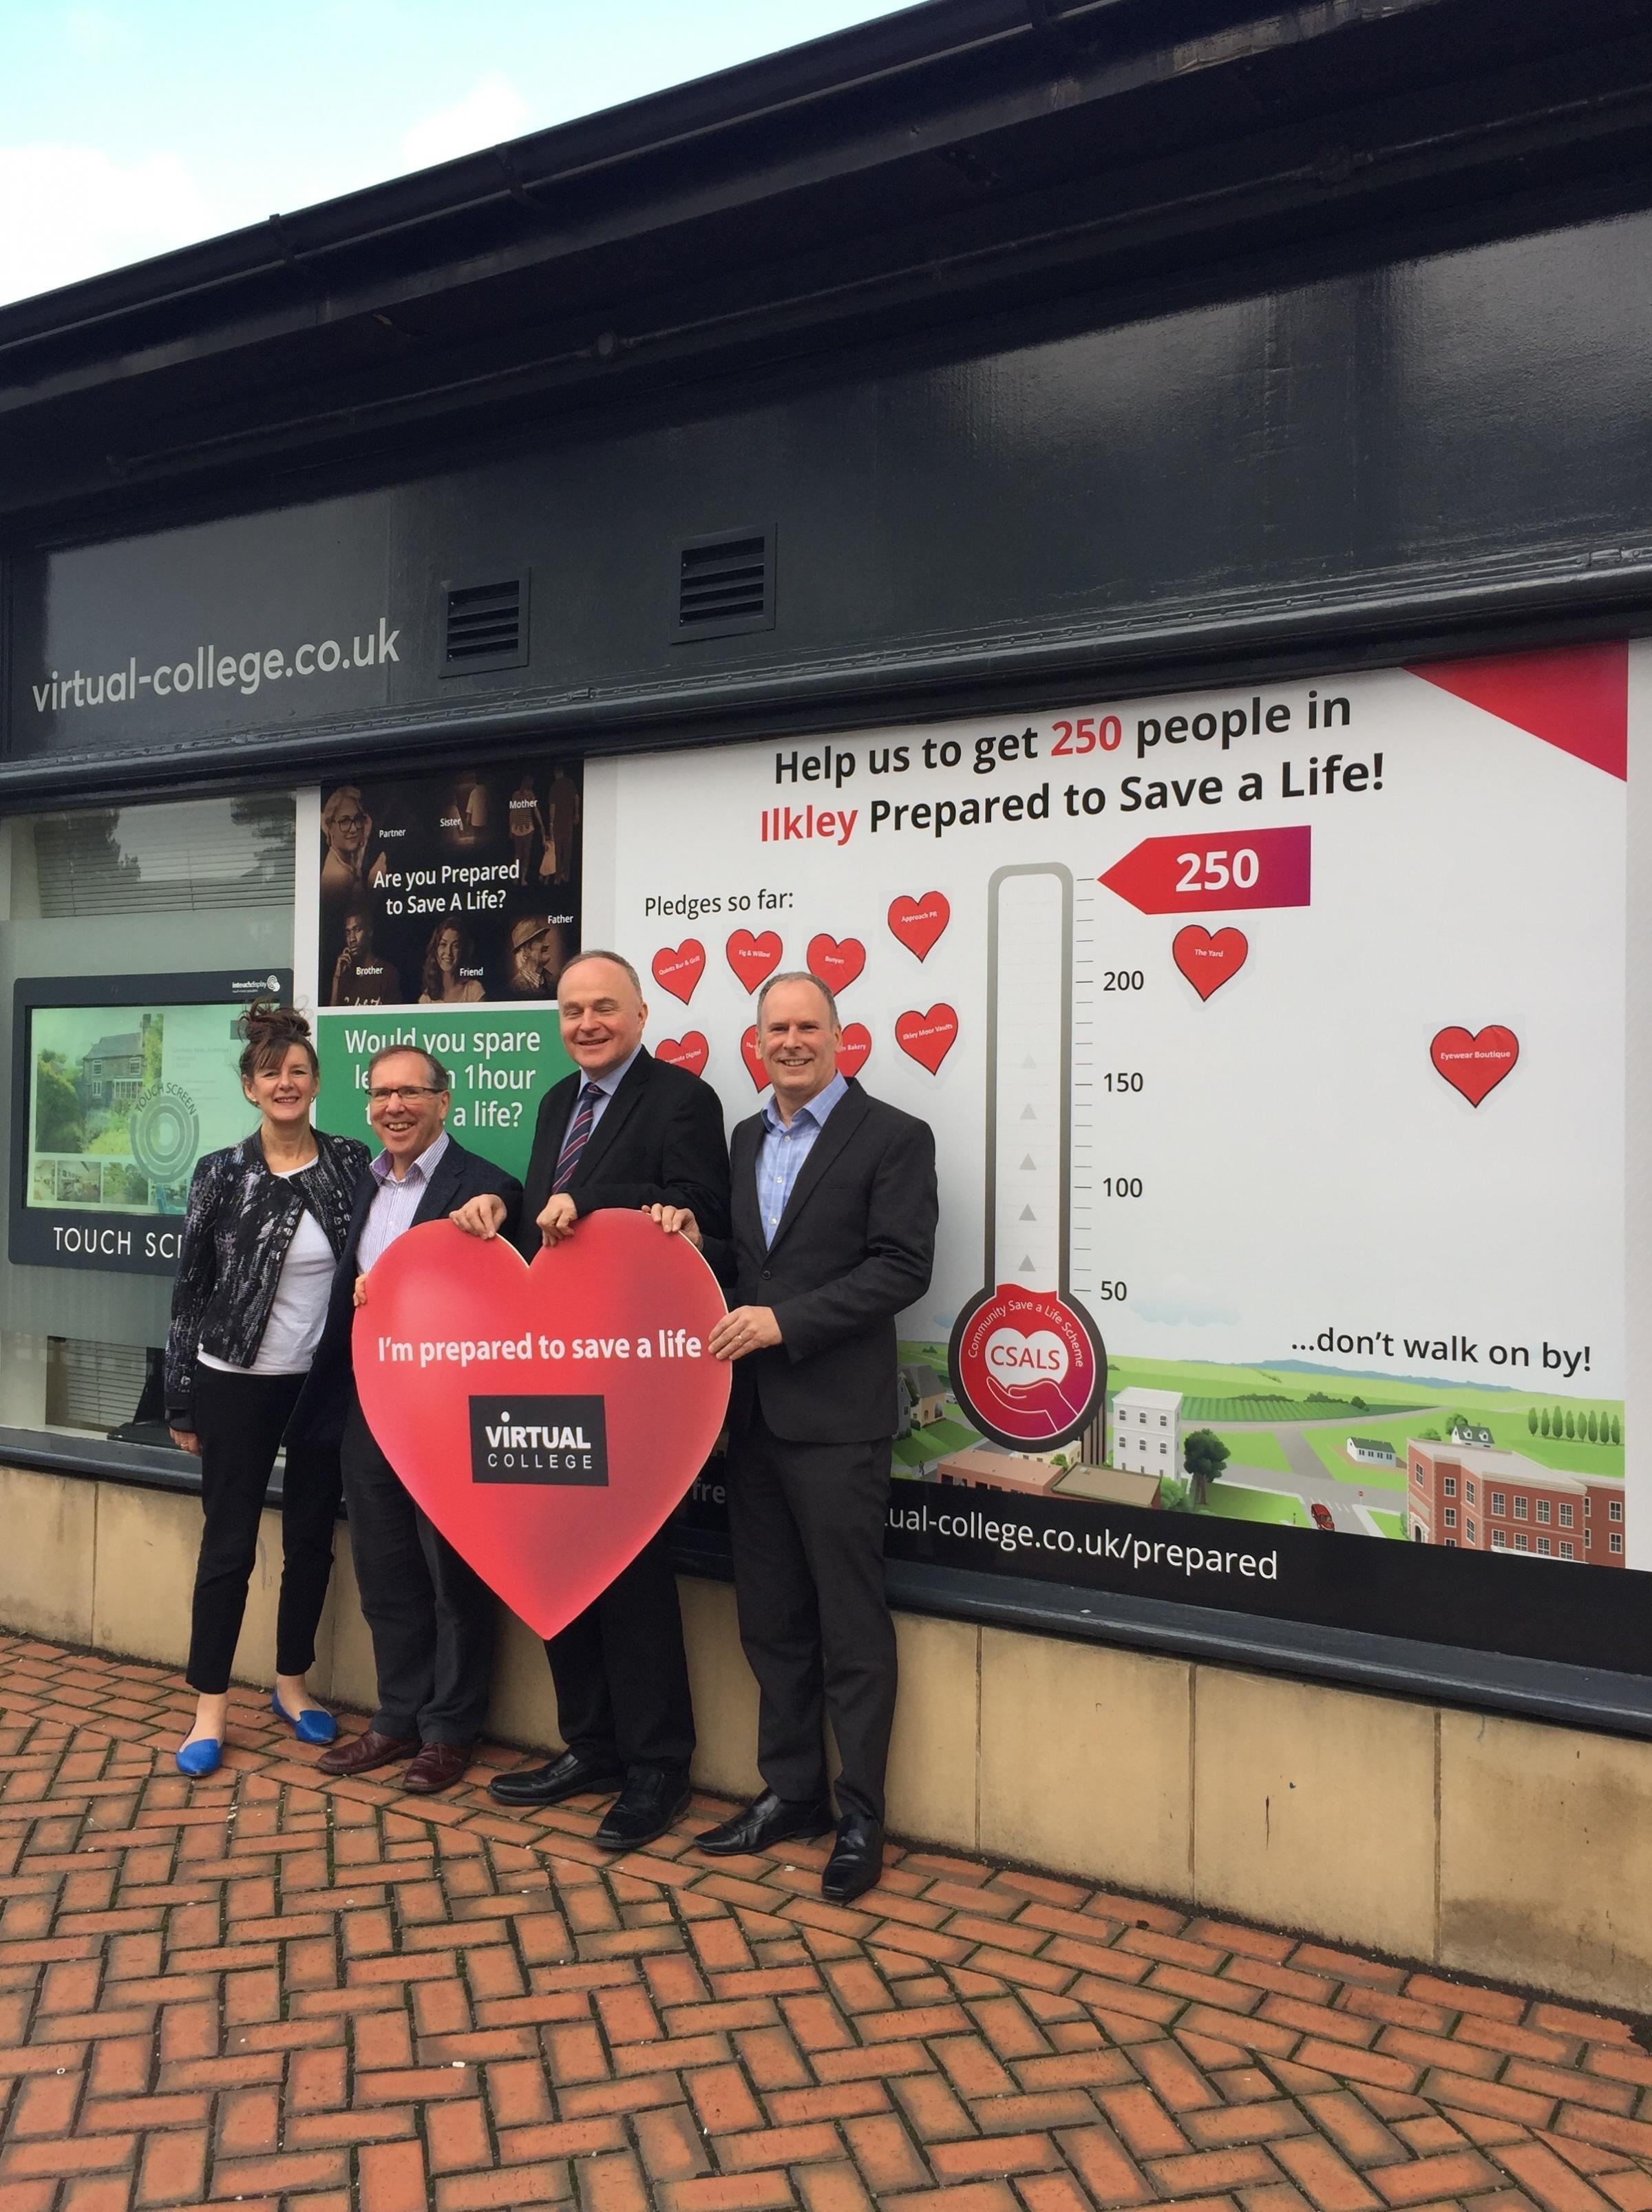 Pictured outside the Ilkley head office of Virtual College. from right to left are Rod Knox, CEO of Virtual College, John Grogan MP, and Bob Gomersall and Lesley Ord from Virtual College